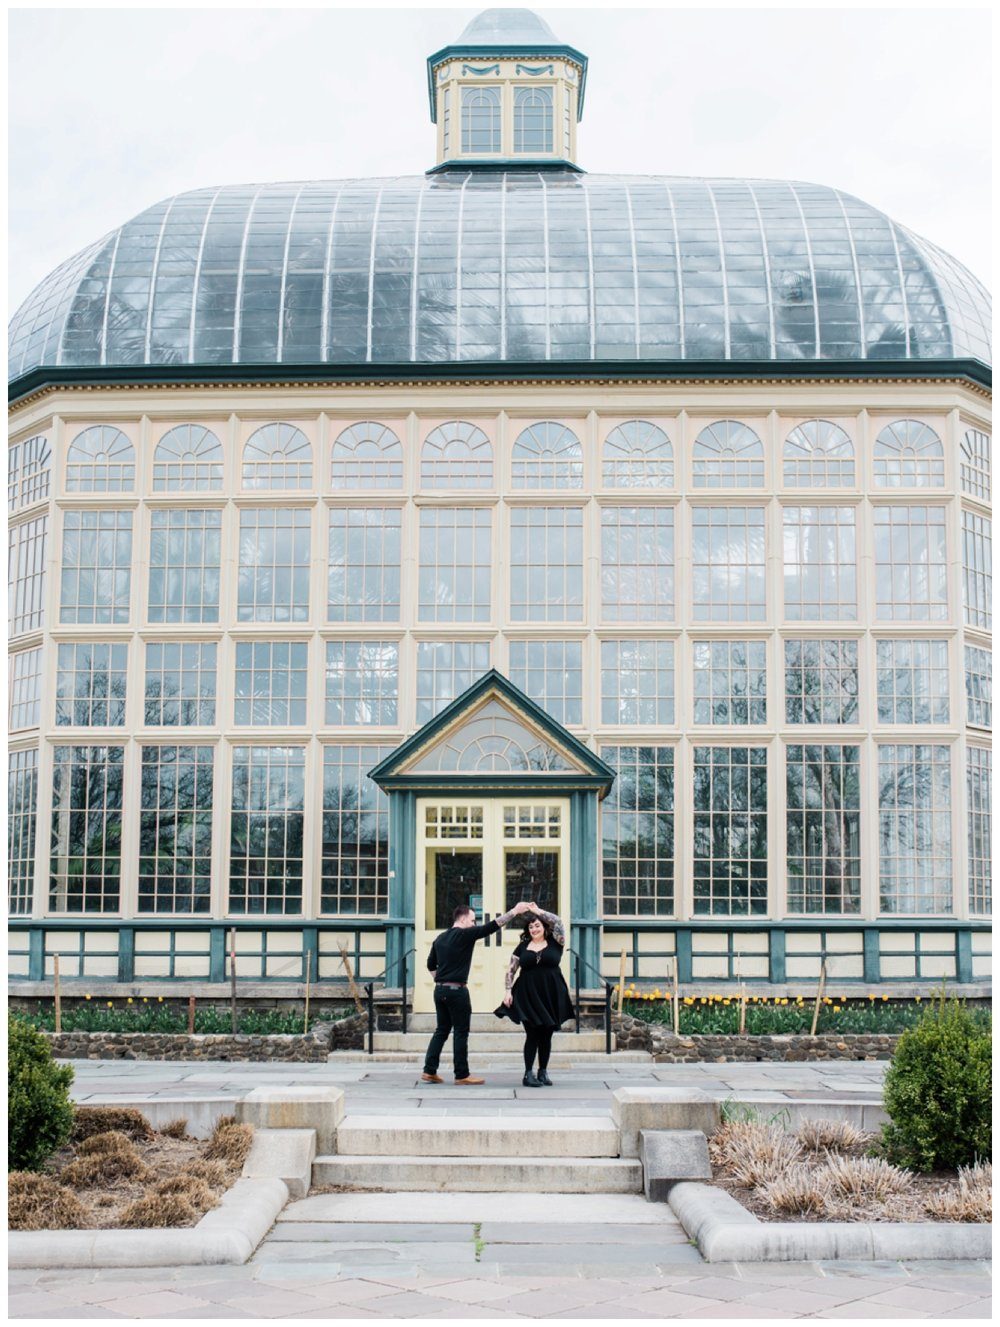 Spring engagement session in a greenhouse Rawlings Conservatory in Baltimore by Washington DC fine art wedding photographer Lissa Ryan Photography